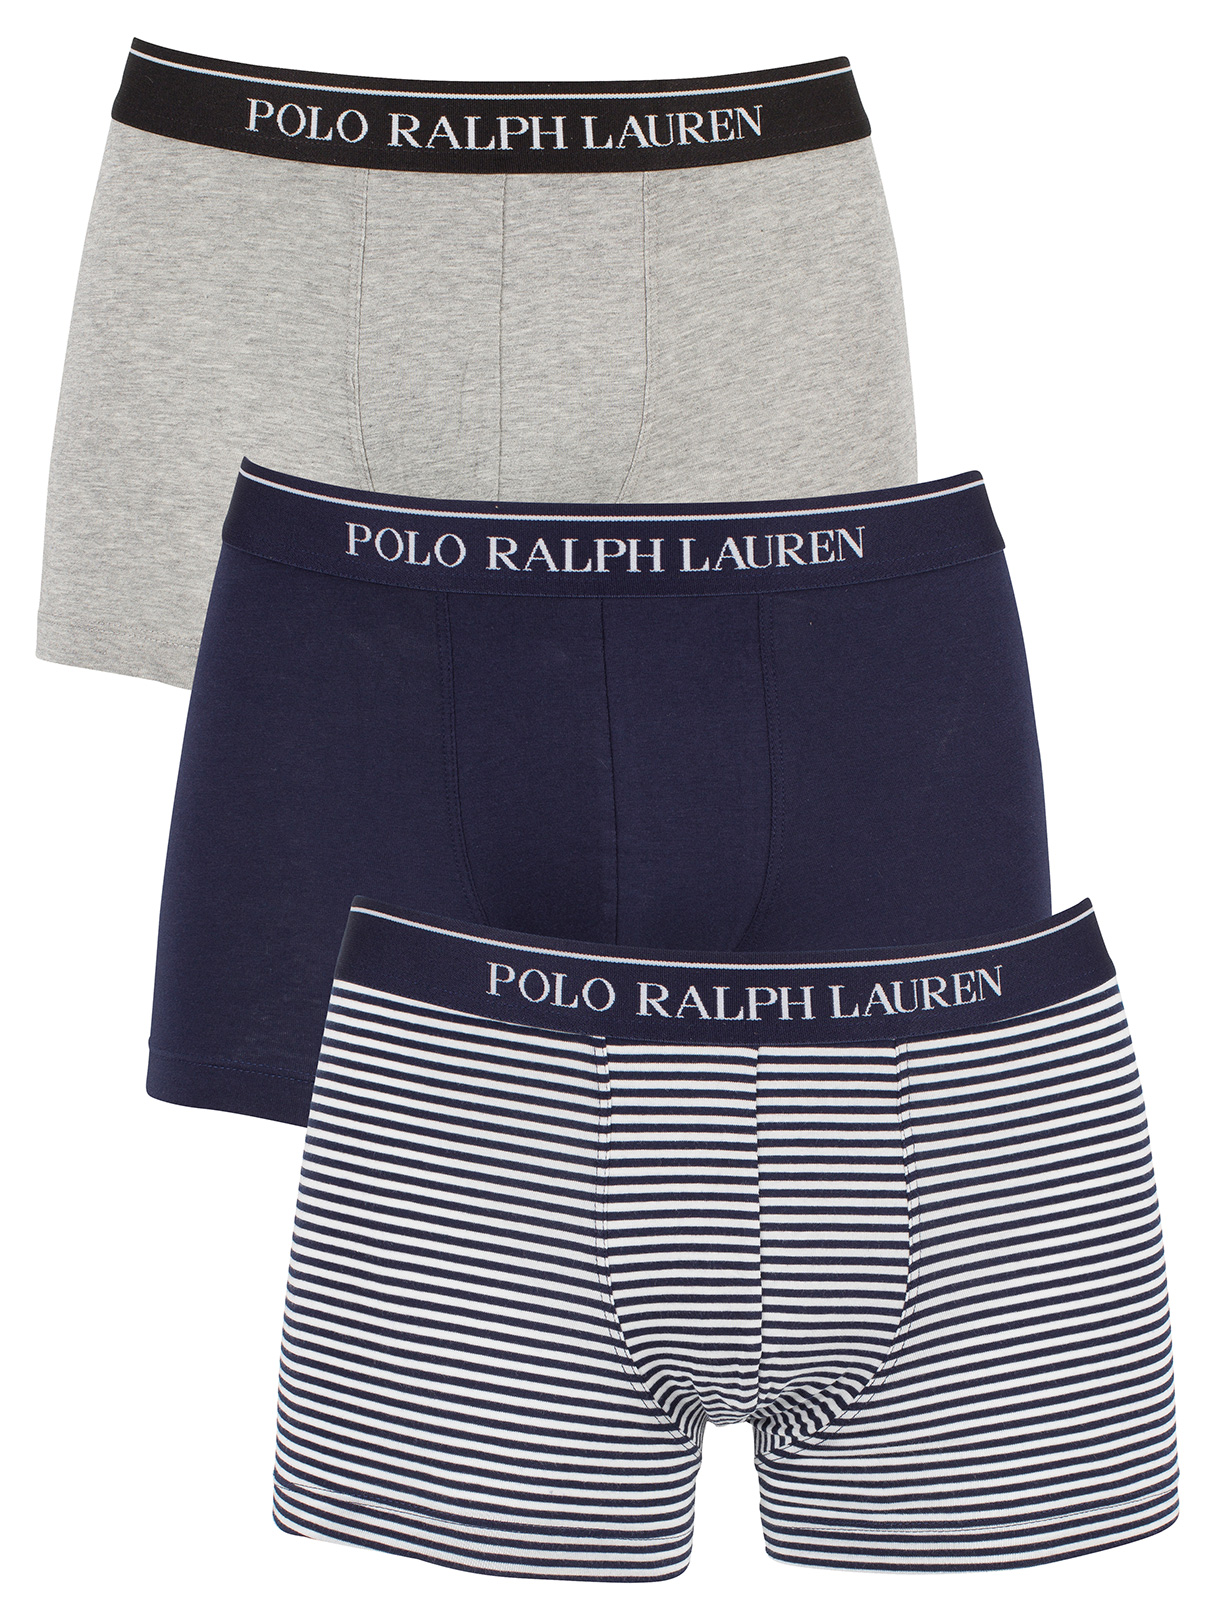 Stand-out.net Polo Ralph Lauren Light Grey Heather/Navy/White Stripe 3 Pack Cotton Stretch Logo Trunks